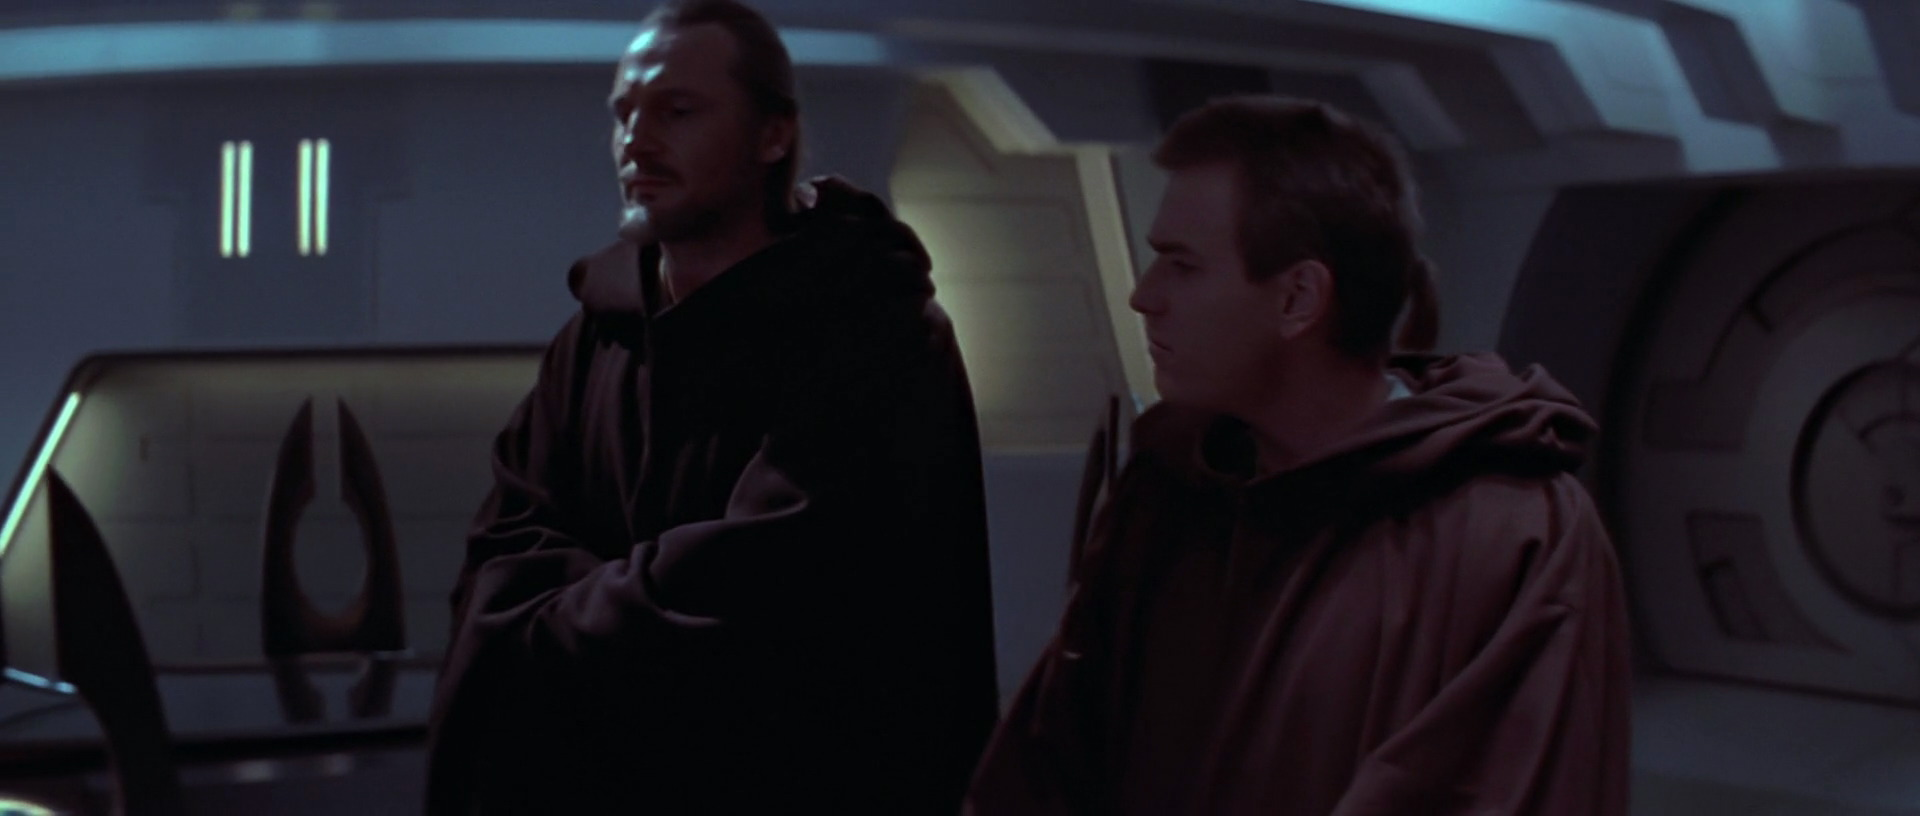 starwars1-movie-screencaps.com-188